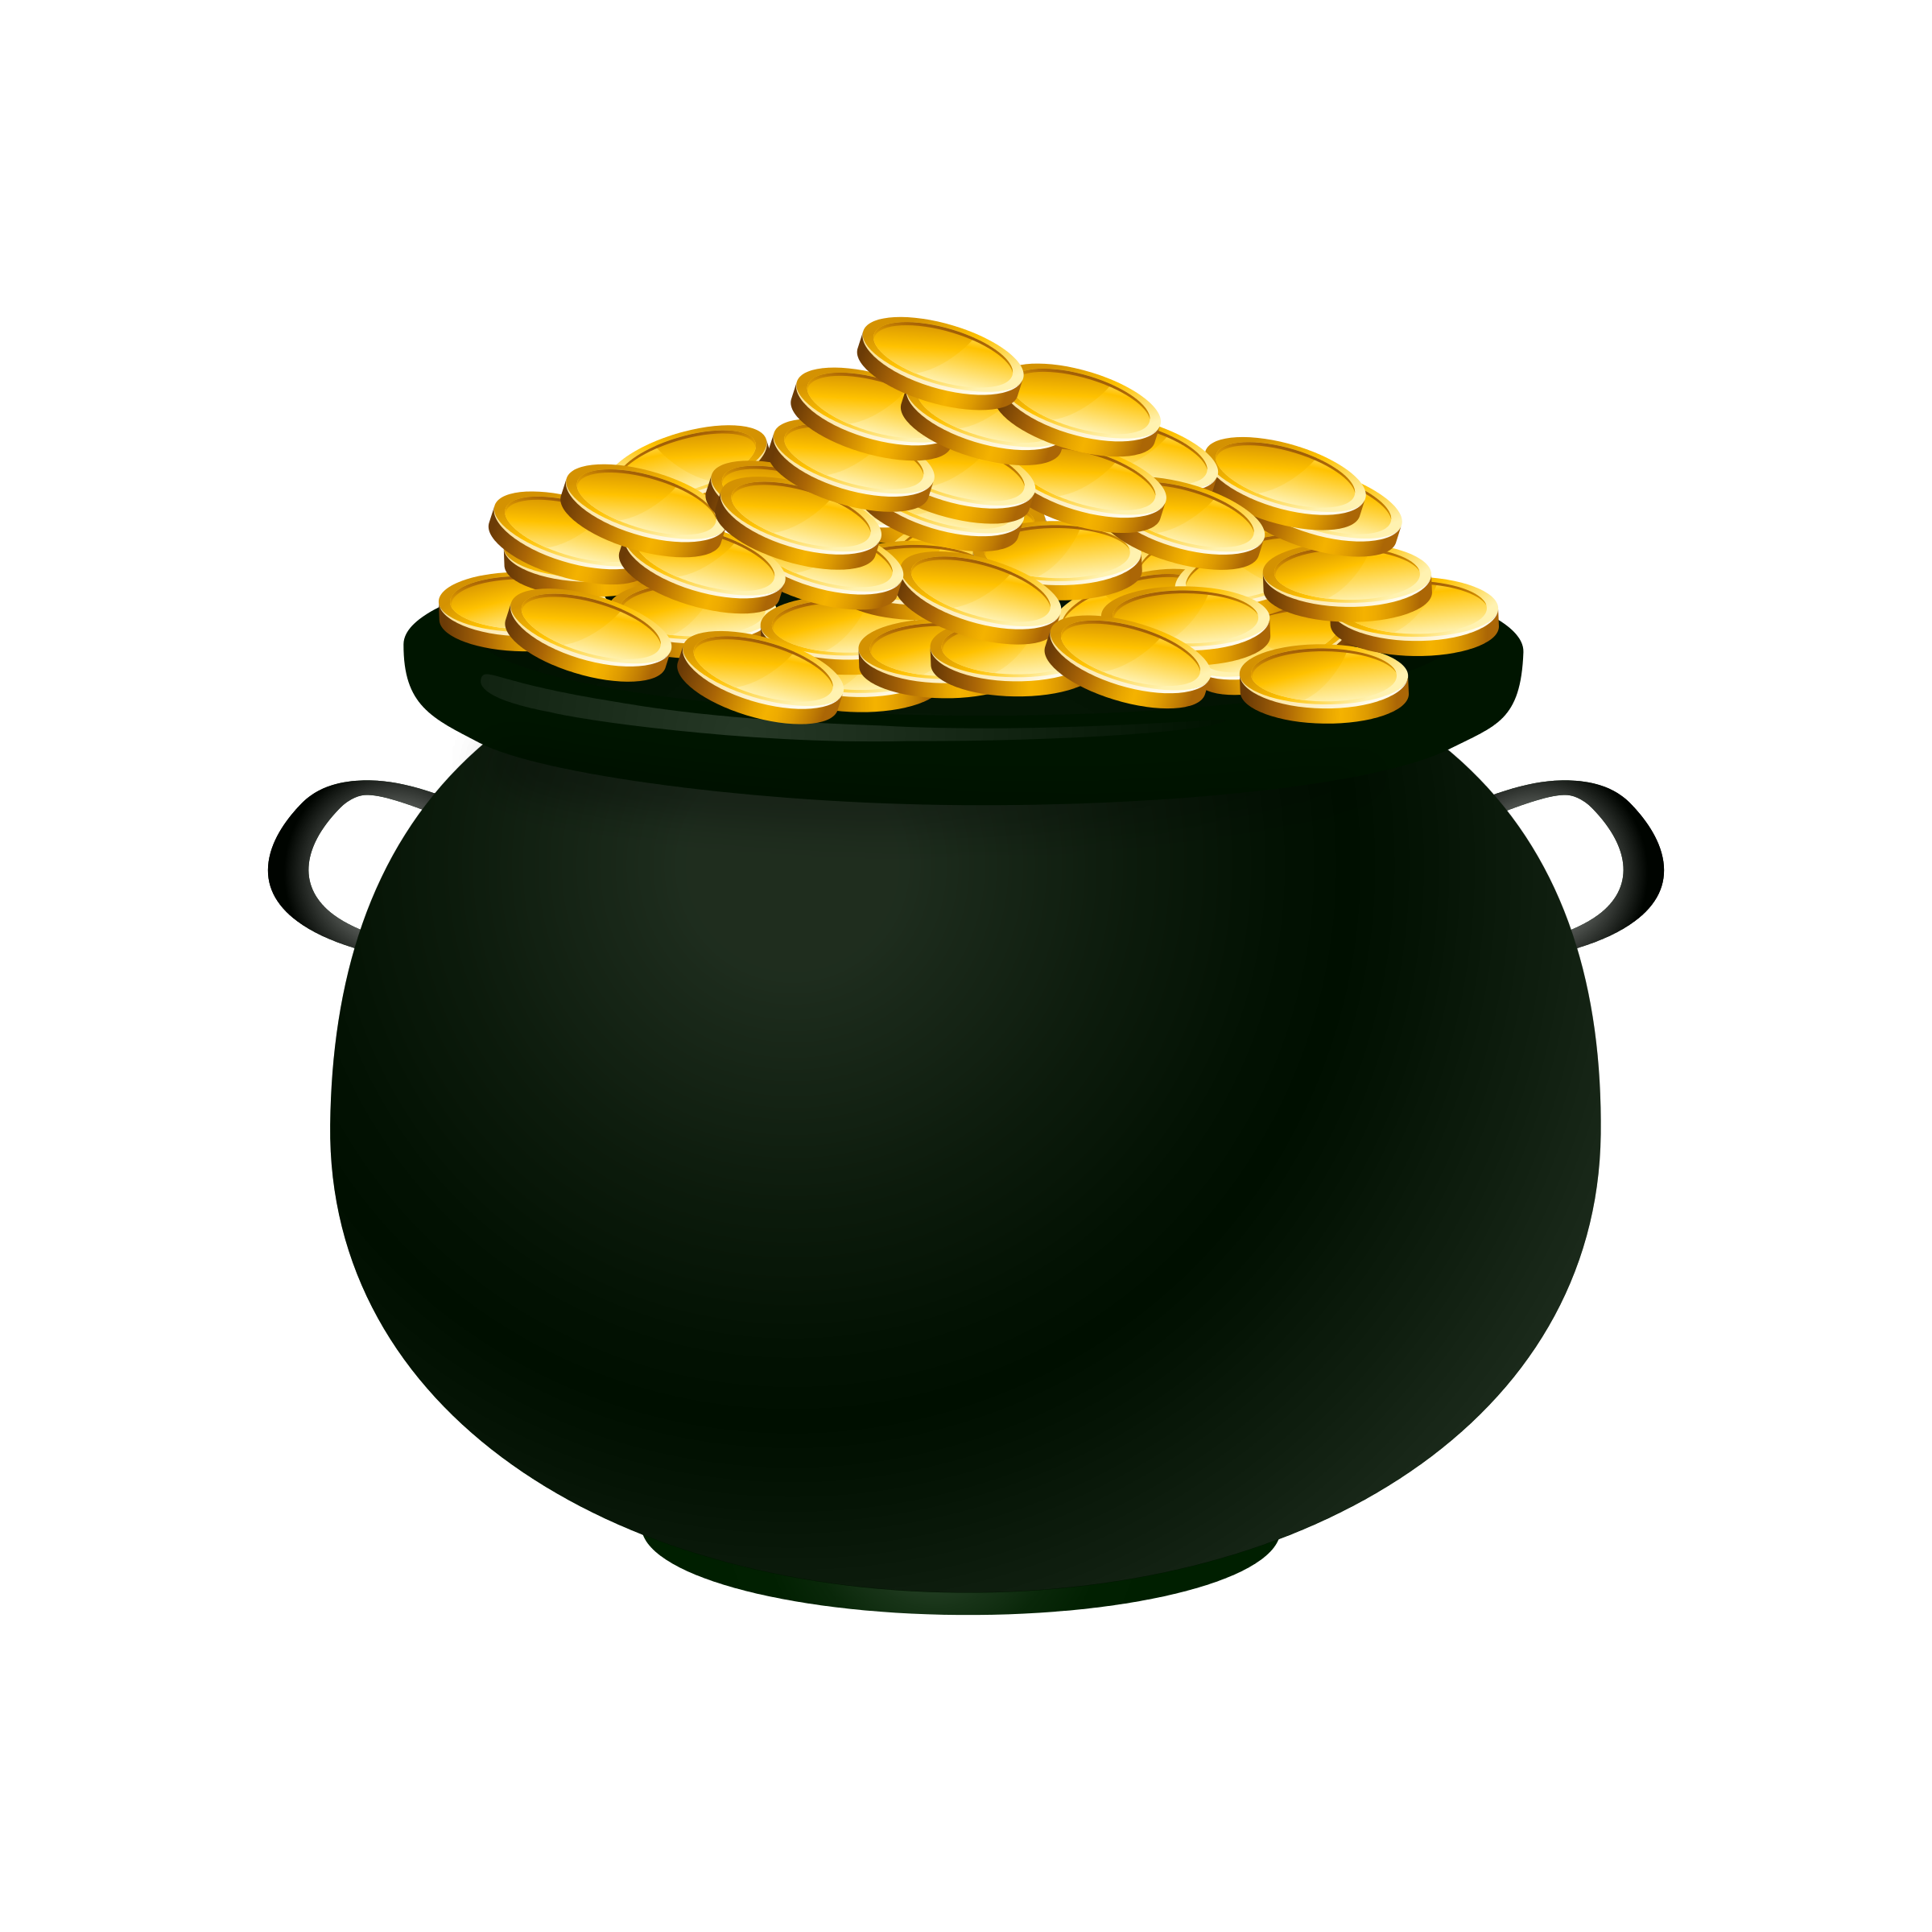 Leprechaun pot of gold png. Free picture a download